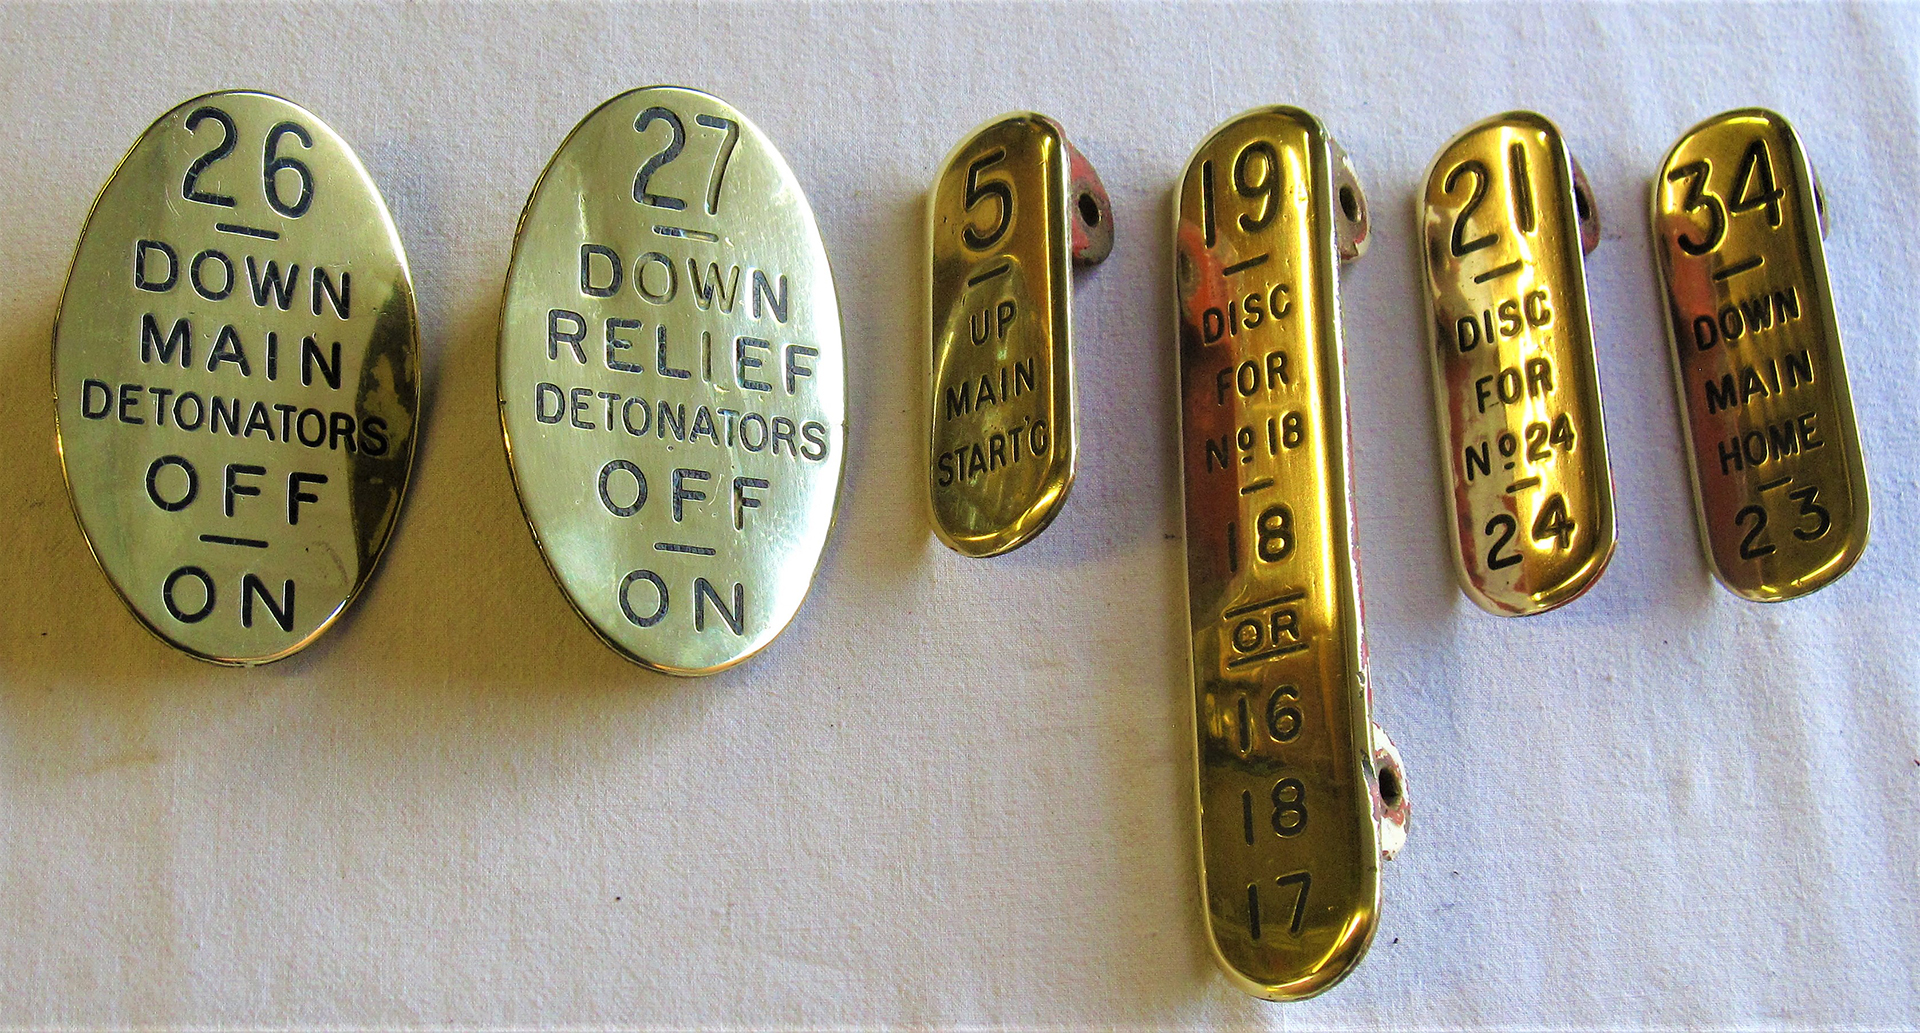 A lot containing a collection of GWR brass lever leads to include oval 26 DOWN MAIN DETONATORS. Oval